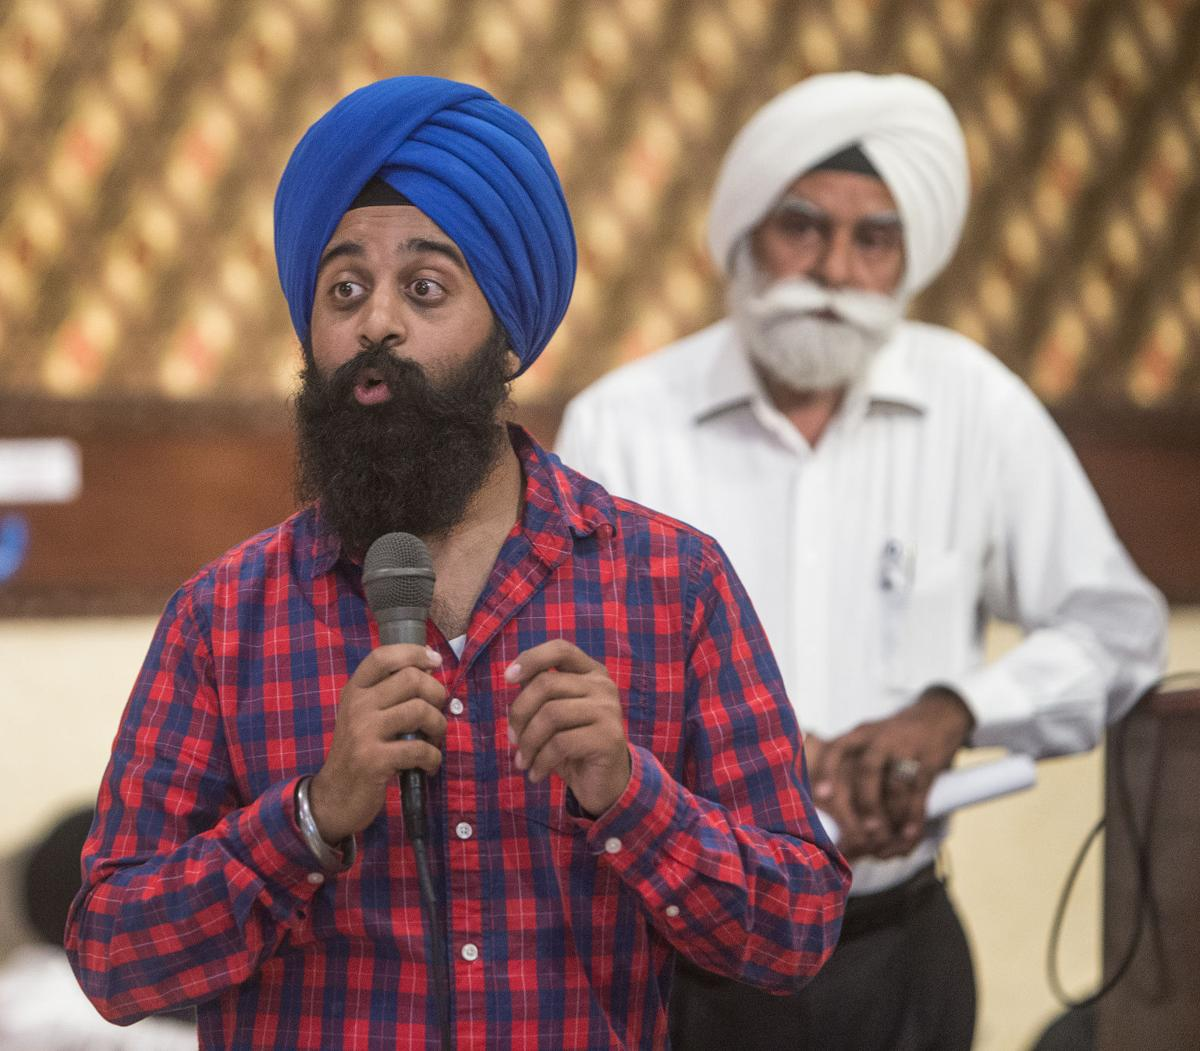 D.A. charges Bakersfield man with hate crime following attack on local Sikh resident